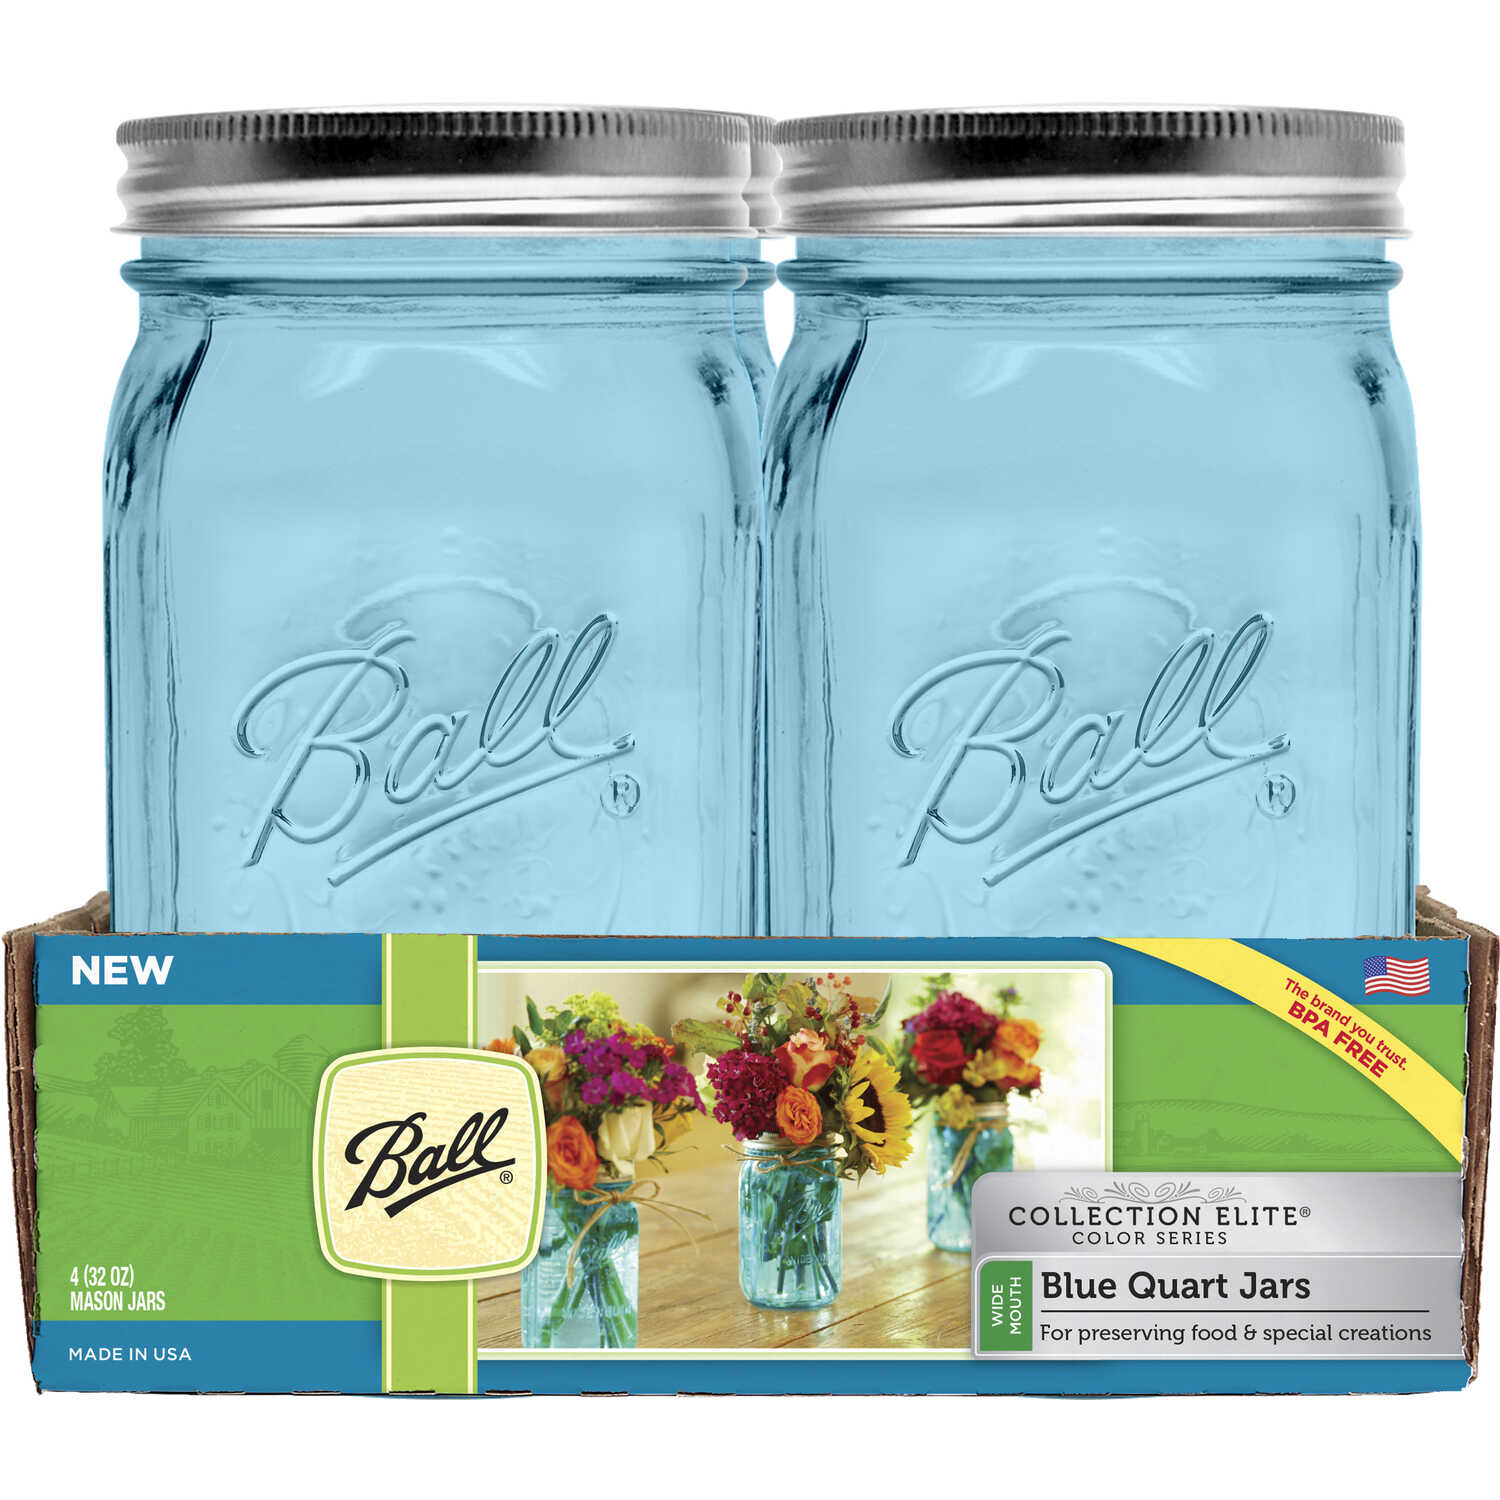 Ball Collection Elite Wide Mouth Canning Jar 1 qt. 4 pk - Ace Hardware